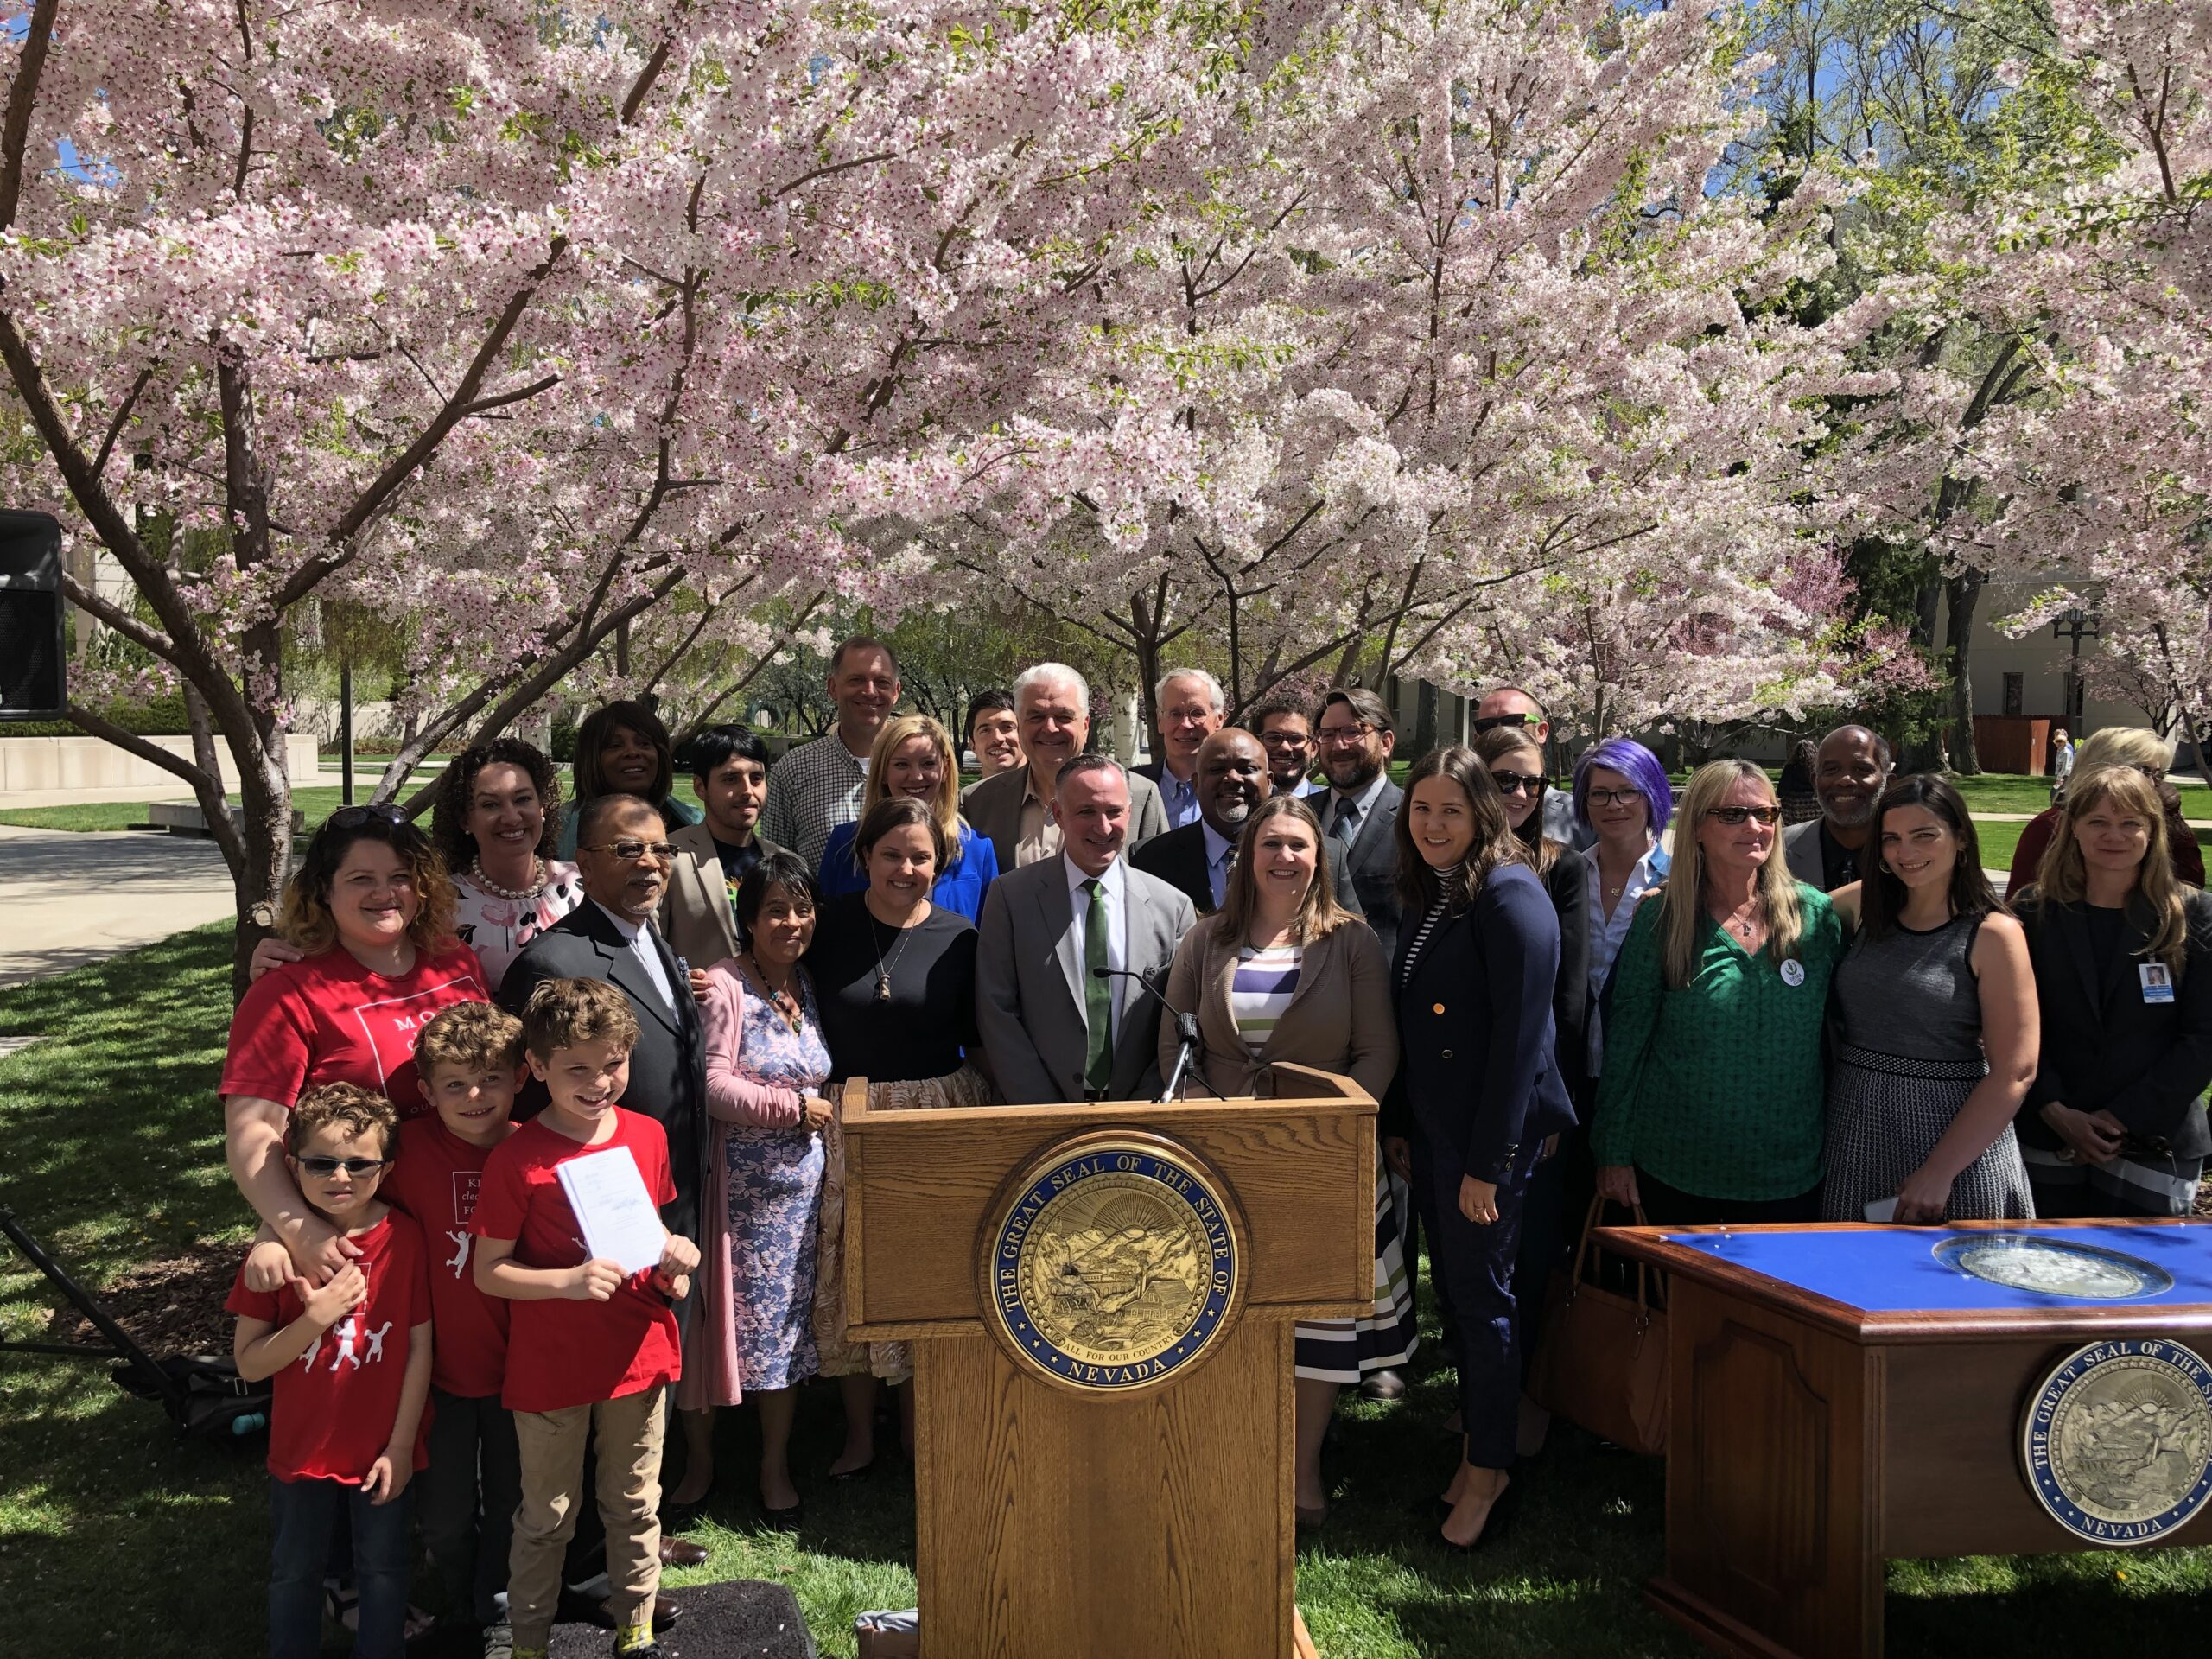 Nev. Governor Sisolak Signs Renewable Energy Bill Following Unanimous Passage by Lawmakers